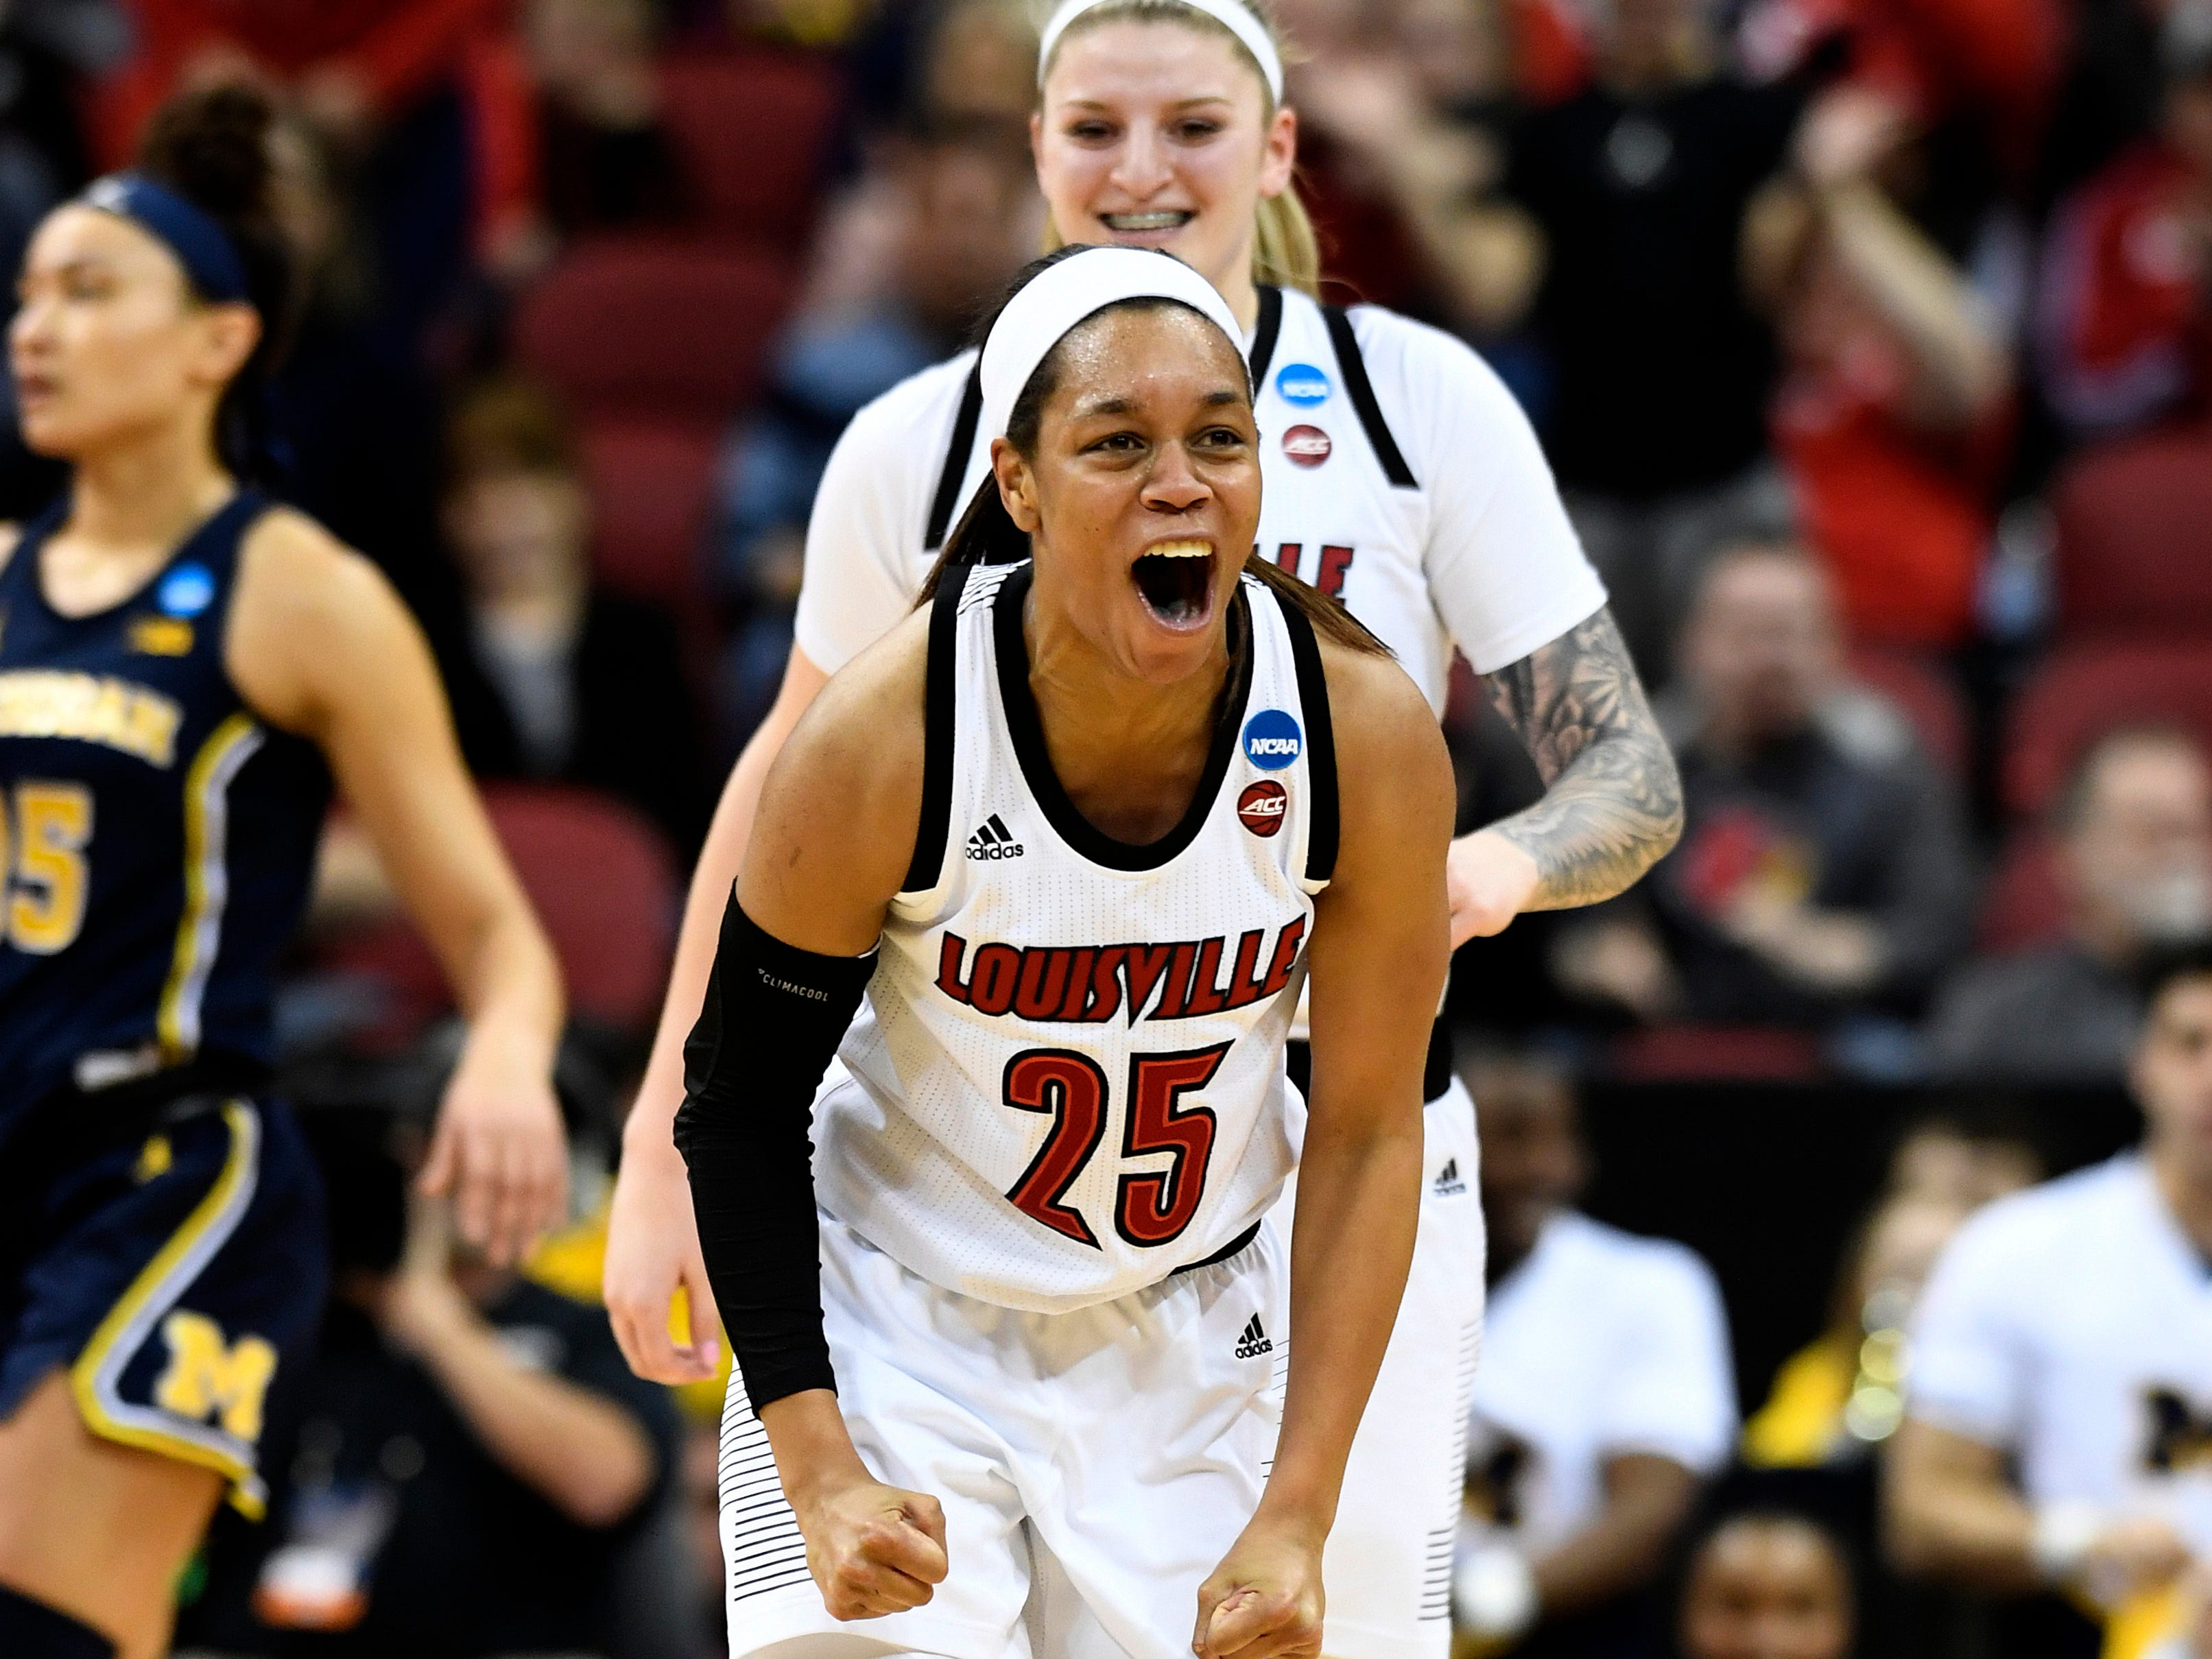 Louisville guard Asia Durr celebrates following a basket.